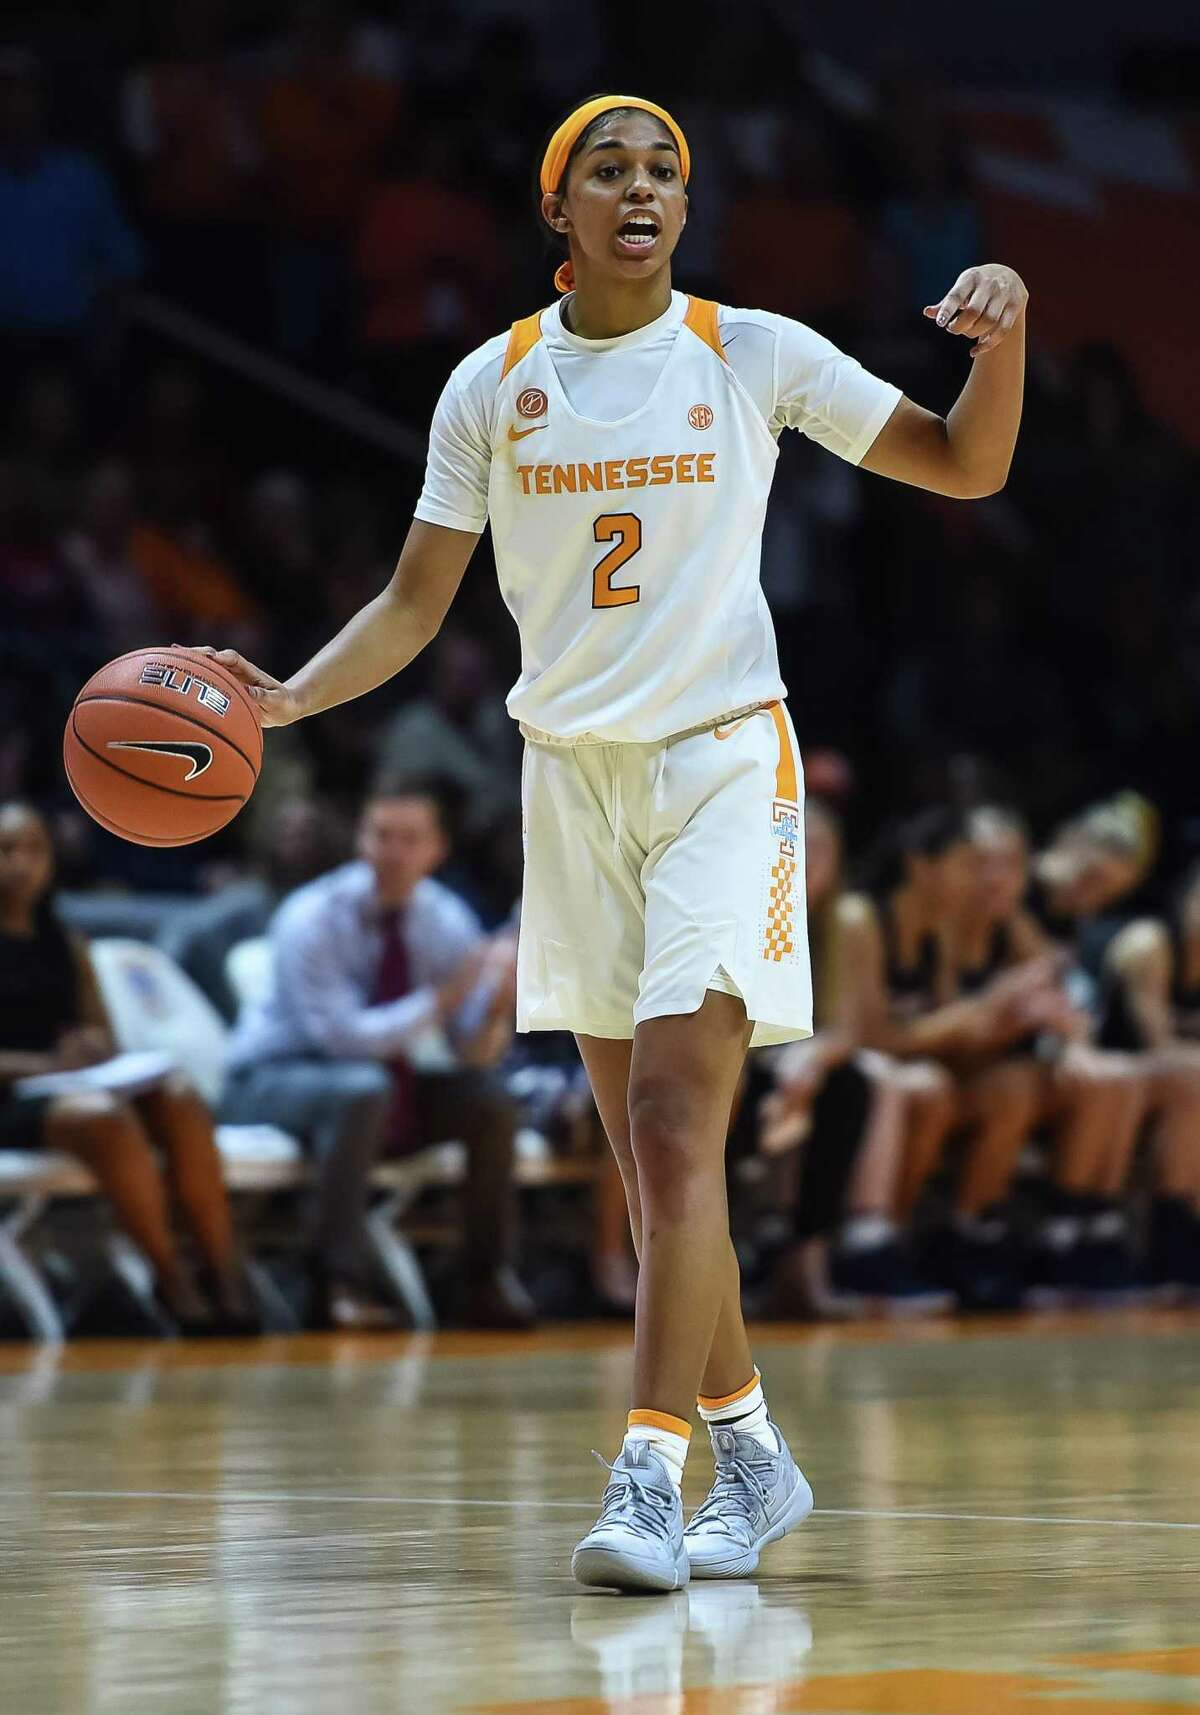 KNOXVILLE, TN - DECEMBER 30: Tennessee Lady Volunteers guard Evina Westbrook (2) brings the ball up court during a college basketball game between the Tennessee Lady Volunteers and Belmont Bruins on December 30, 2018, at Thompson-Boling Arena in Knoxville, TN. (Photo by Bryan Lynn/Icon Sportswire via Getty Images)